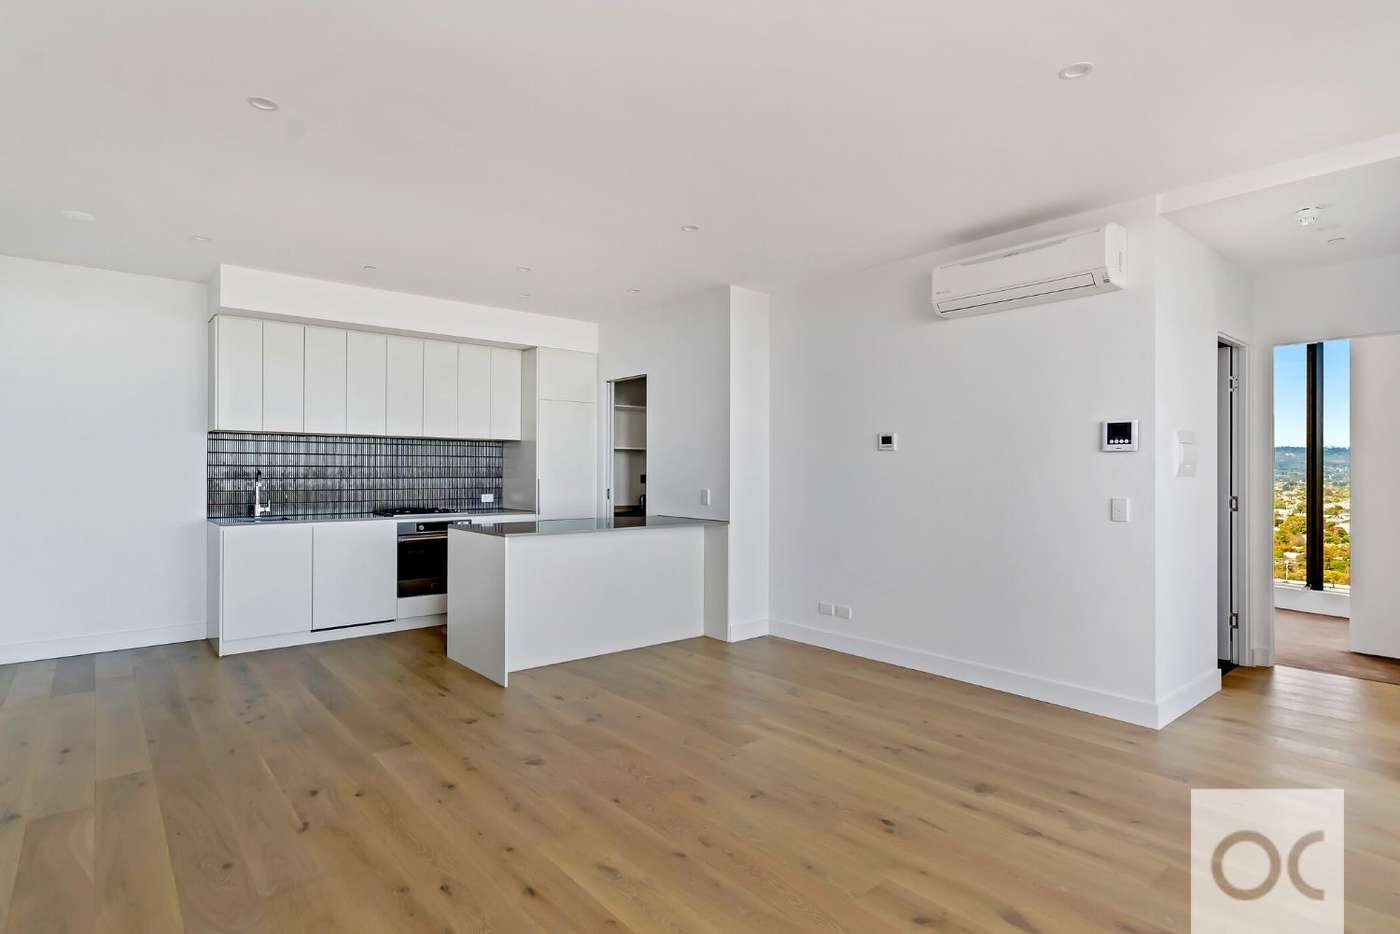 Sixth view of Homely apartment listing, 2210/411-427 King William Street, Adelaide SA 5000